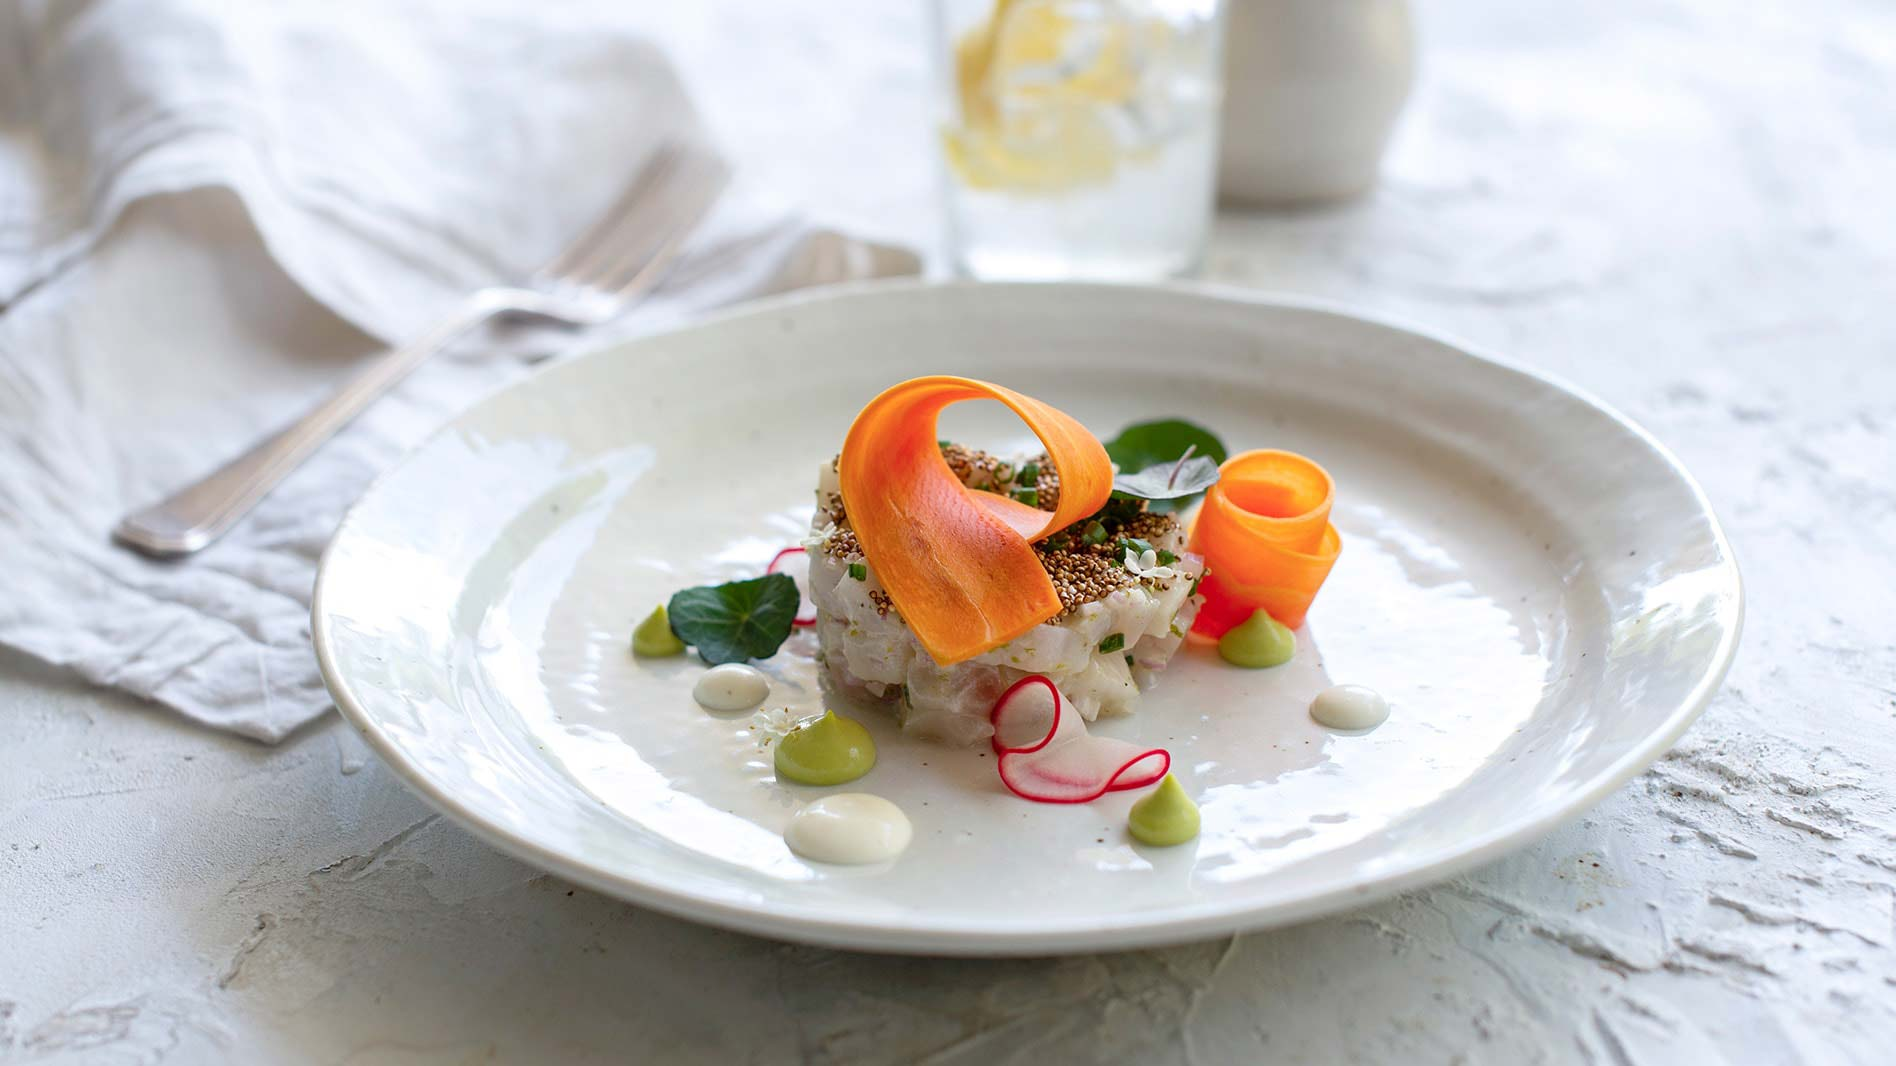 Kingfish ceviche with pickled vegetables